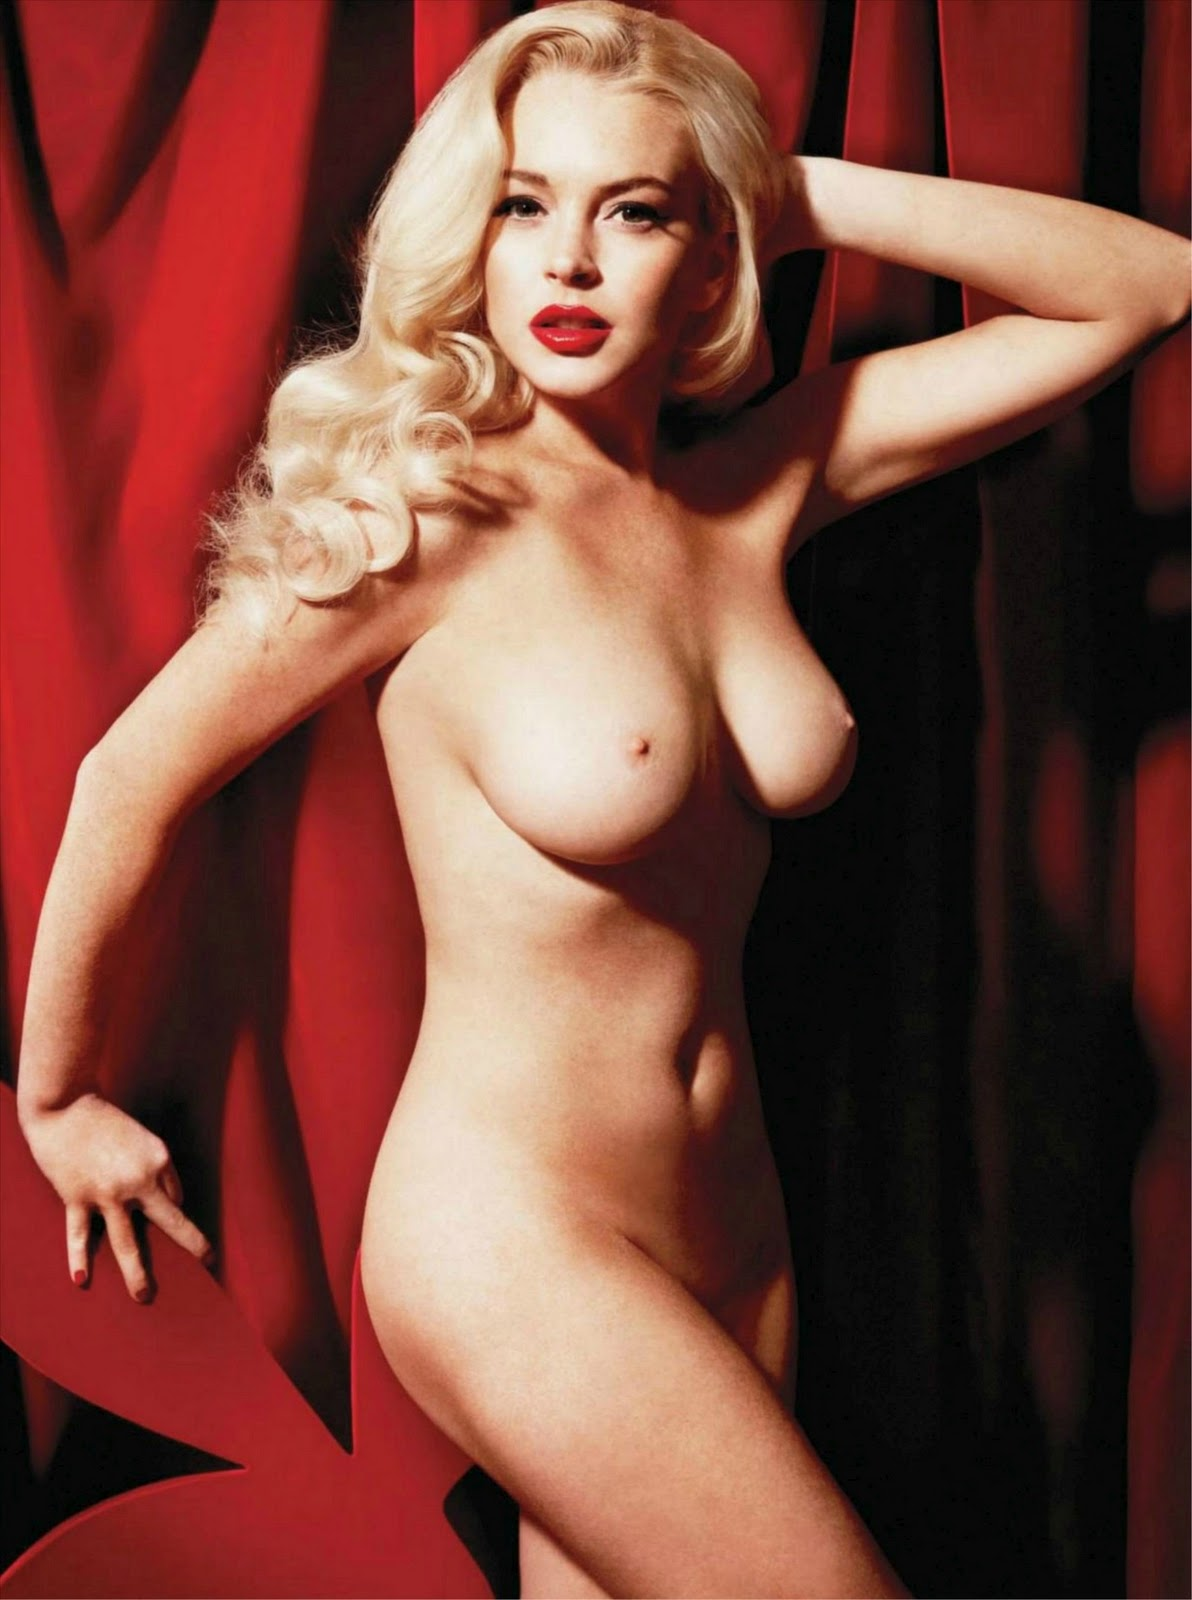 Lindsay Lohan Poses Nude For Playboy Magazine January